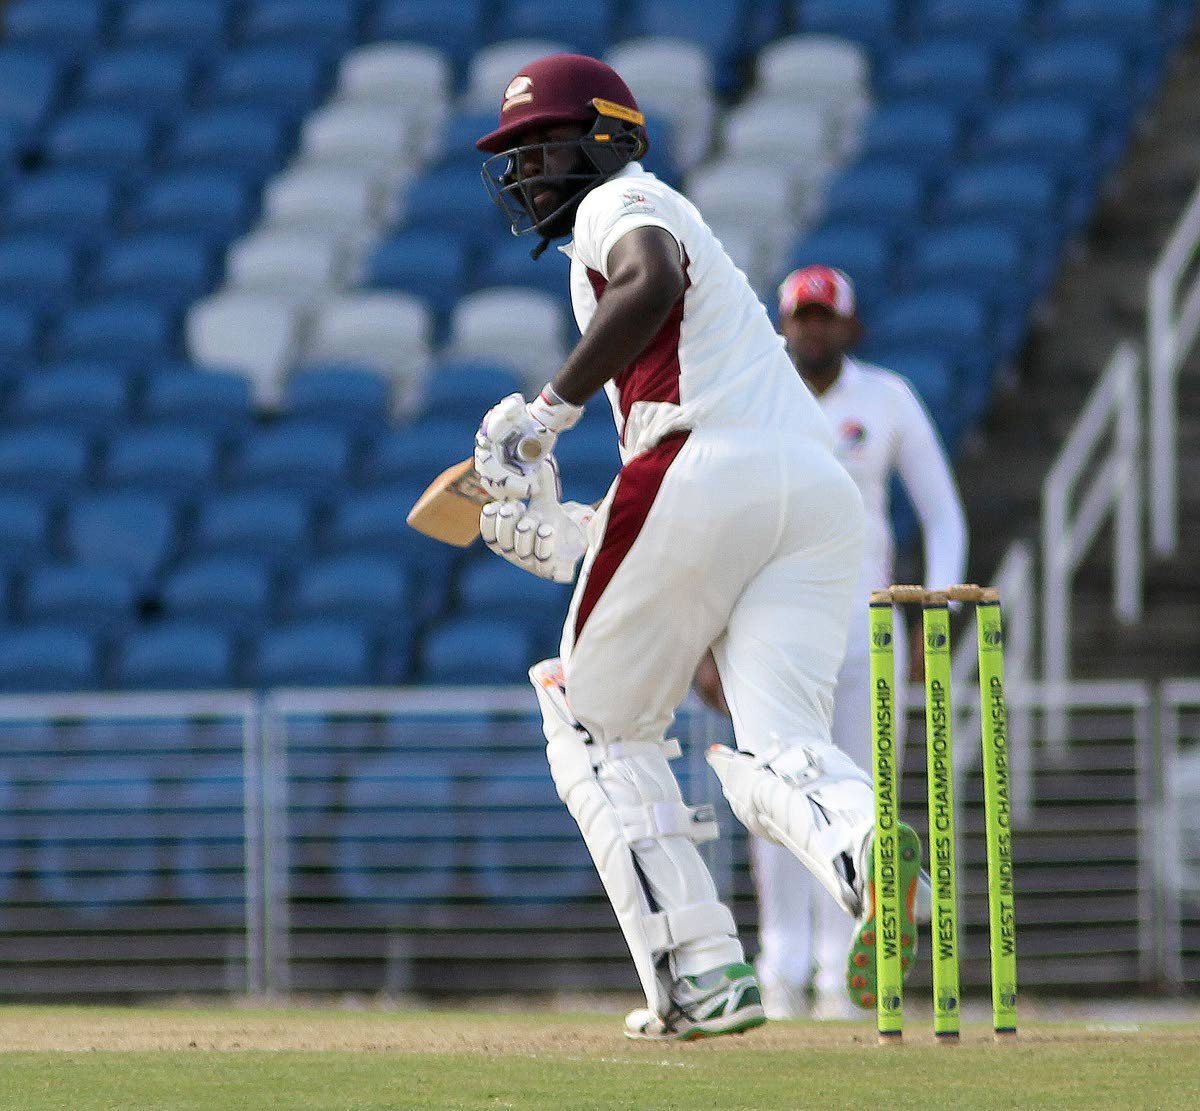 Leeward Islands' Montcin Hodge plays a shot against TT on day one of their four-day match at the Brian Lara Academy, Tarouba, last Friday. PHOTO BY LINCOLN HOLDER